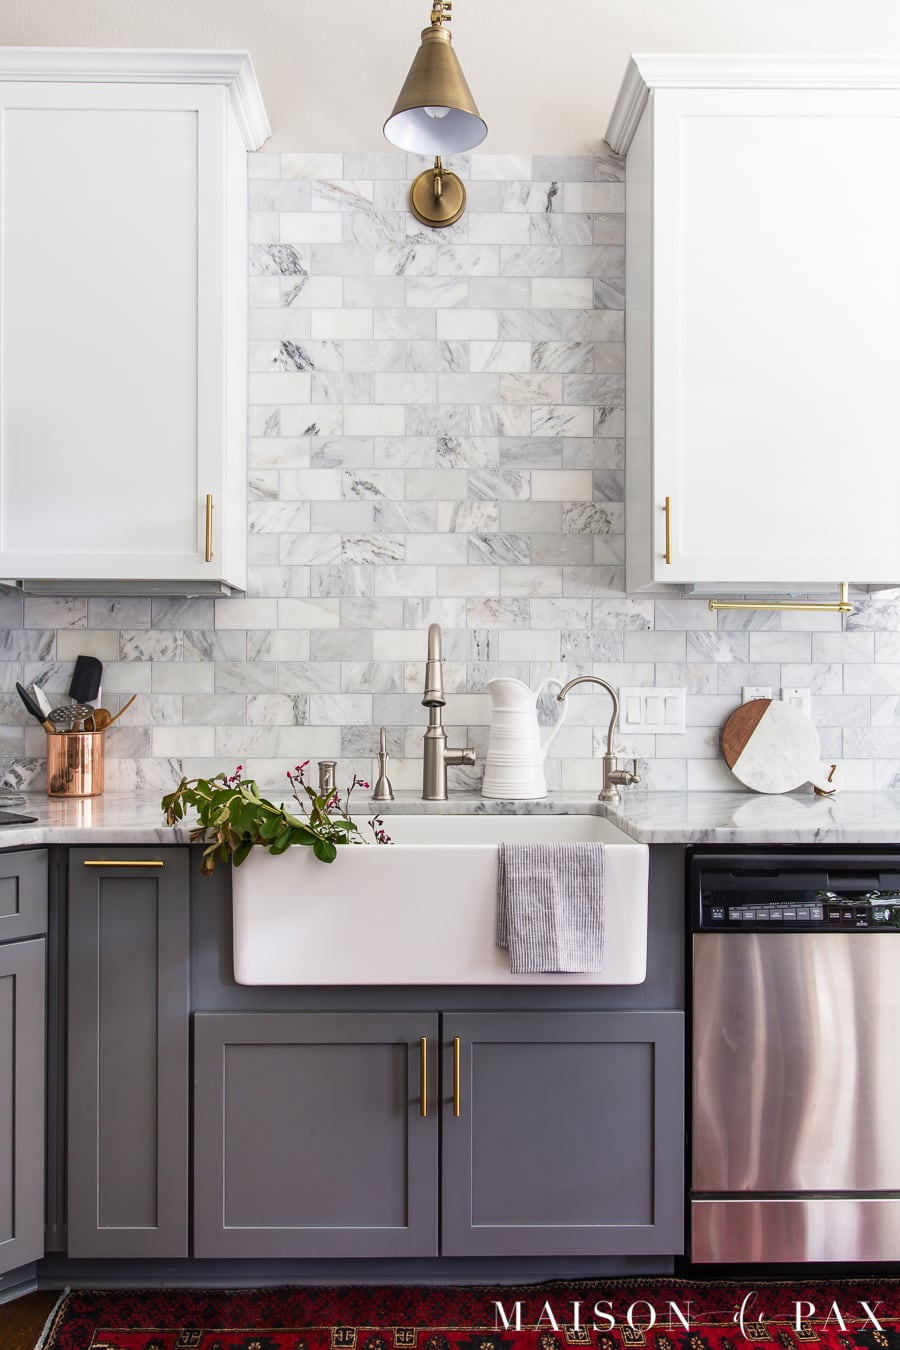 kitchen organization ideas: follow these 5 tips for a beautiful and functional kitchen! #kitchenorganization #organize #organizationideas #cabinetorganization #marblekitchen